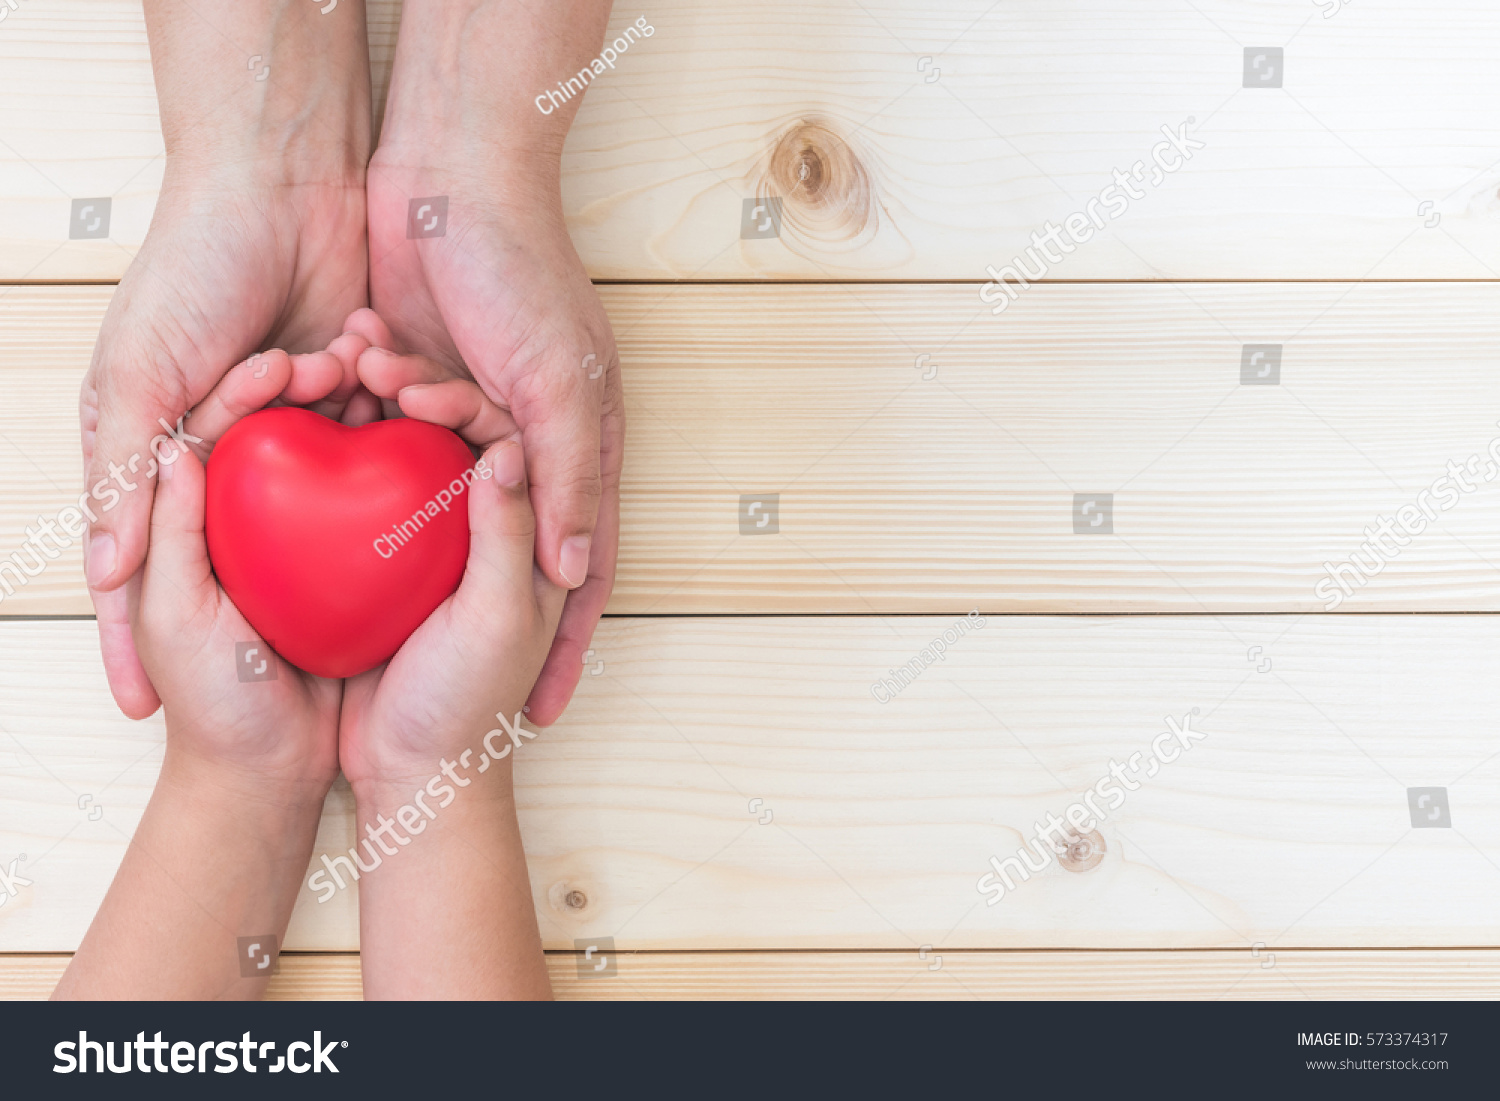 I love you Mom, Mother's Day celebration with parent woman holds young kid's hands supporting red heart, and charity donation for nursing and parenting children family health care concept  #573374317